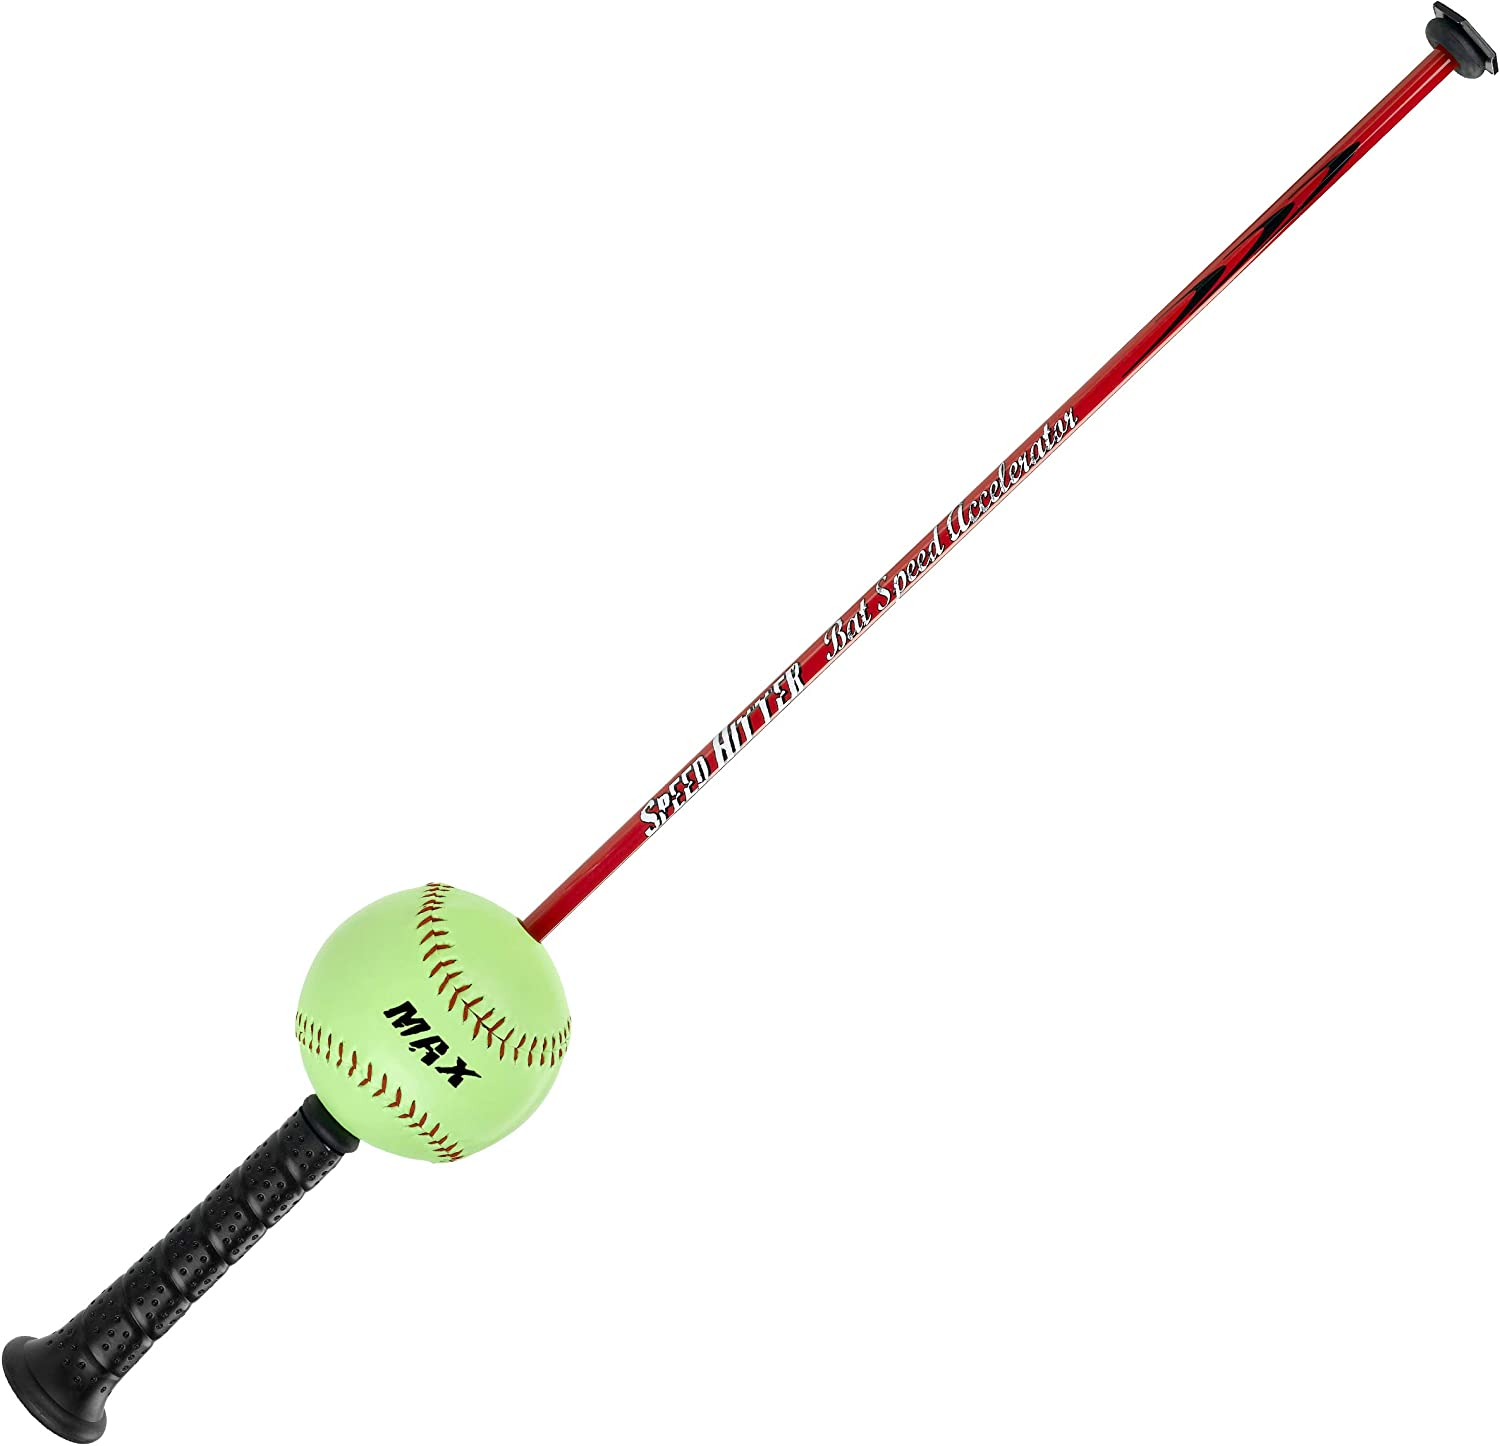 Momentus Sports Popular Spasm price product Speed Hitter and - for MAX Softball